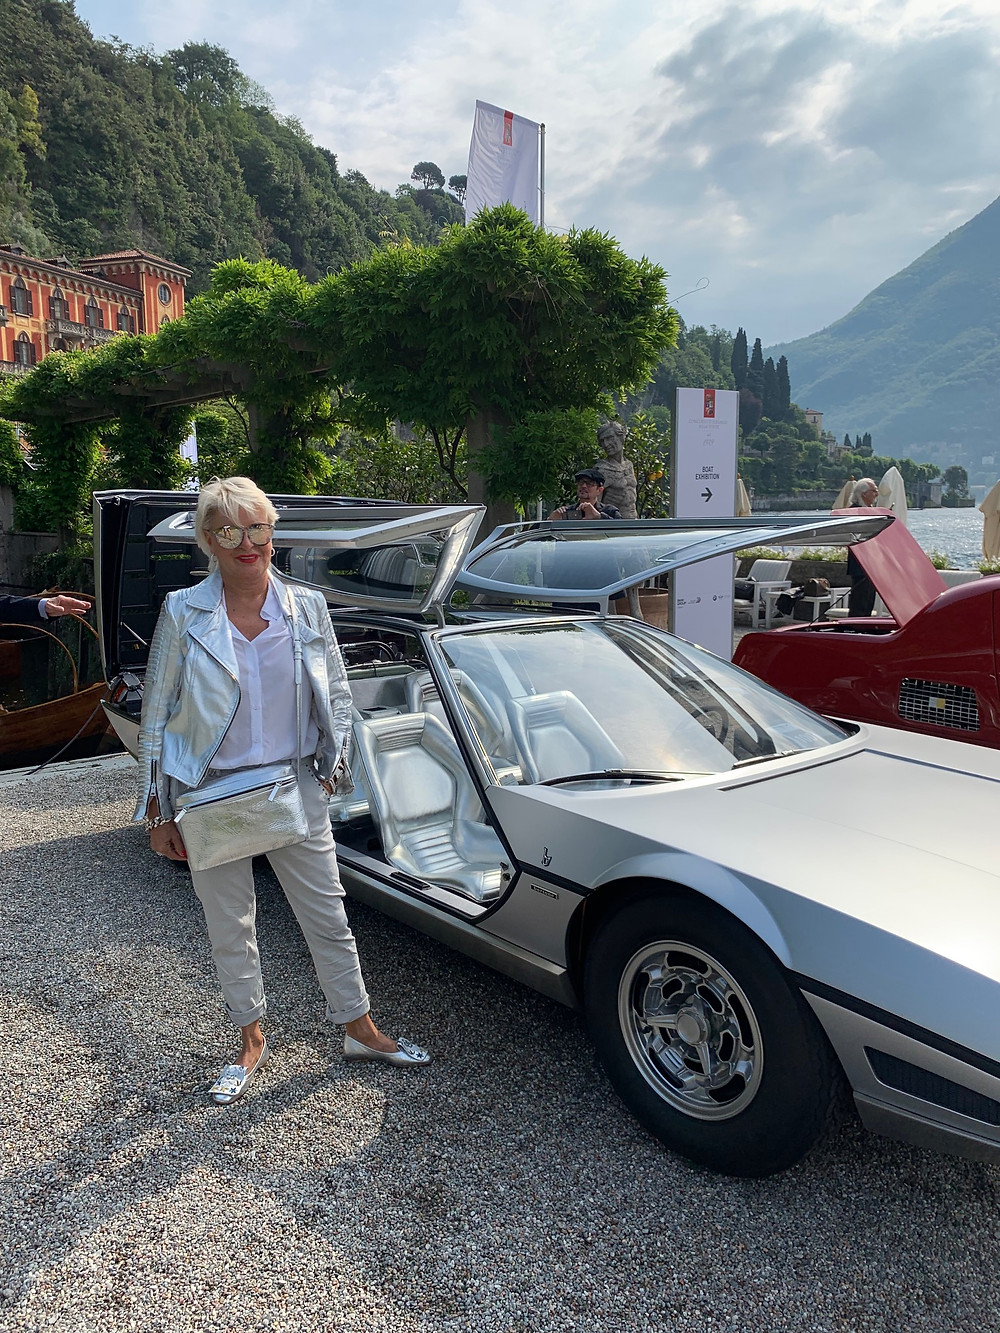 Matching outfit - lady owner and a concept car: 1967 Lamborghini Marzal Four-Seater-Coupé by Bertone